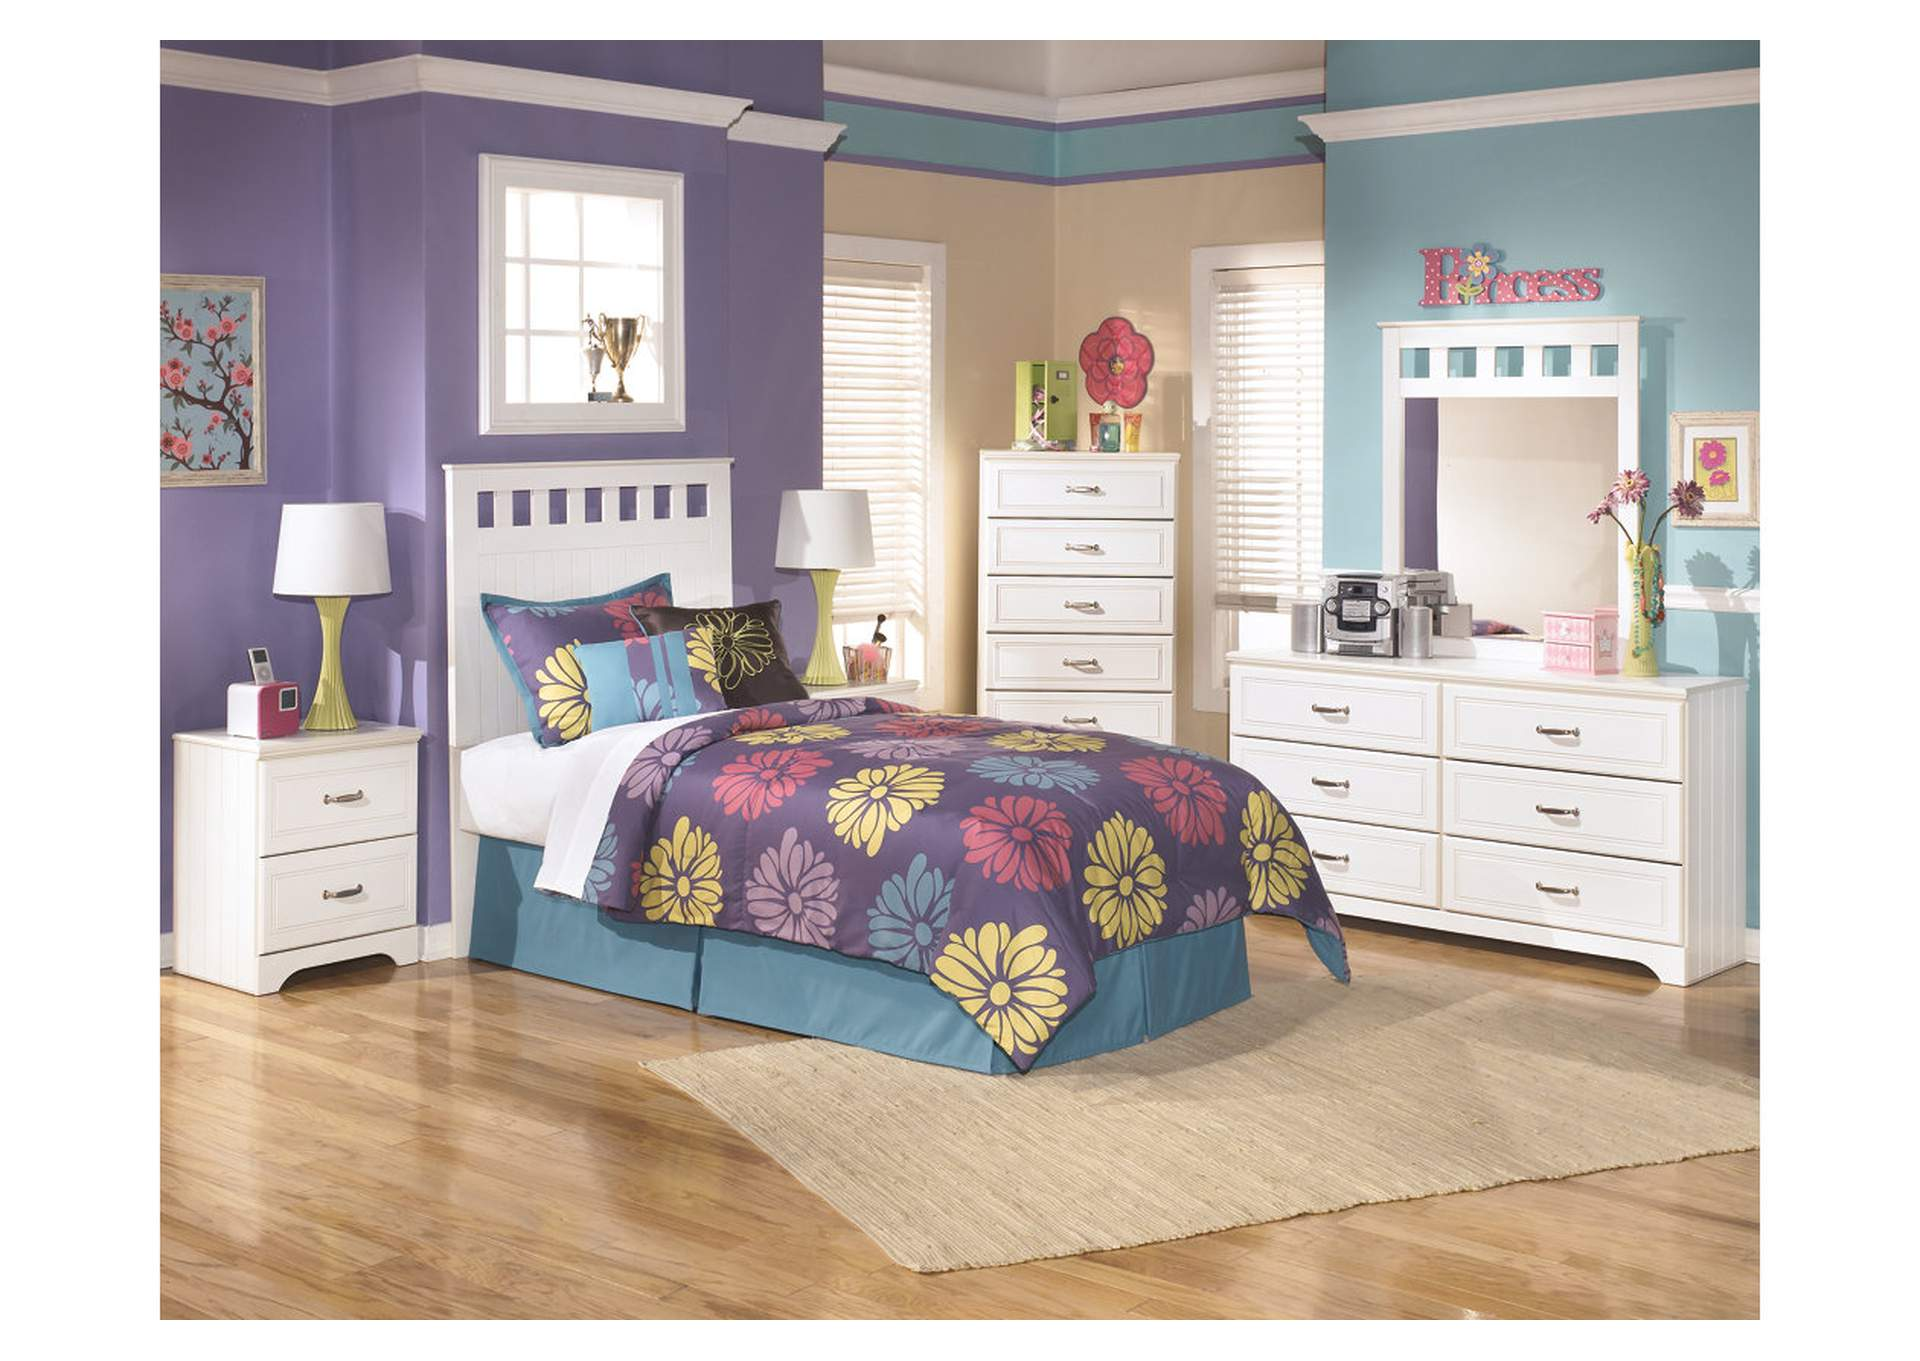 Lulu Twin Panel Headboard w/Dresser, Mirror, Drawer Chest & Nightstand,Signature Design By Ashley